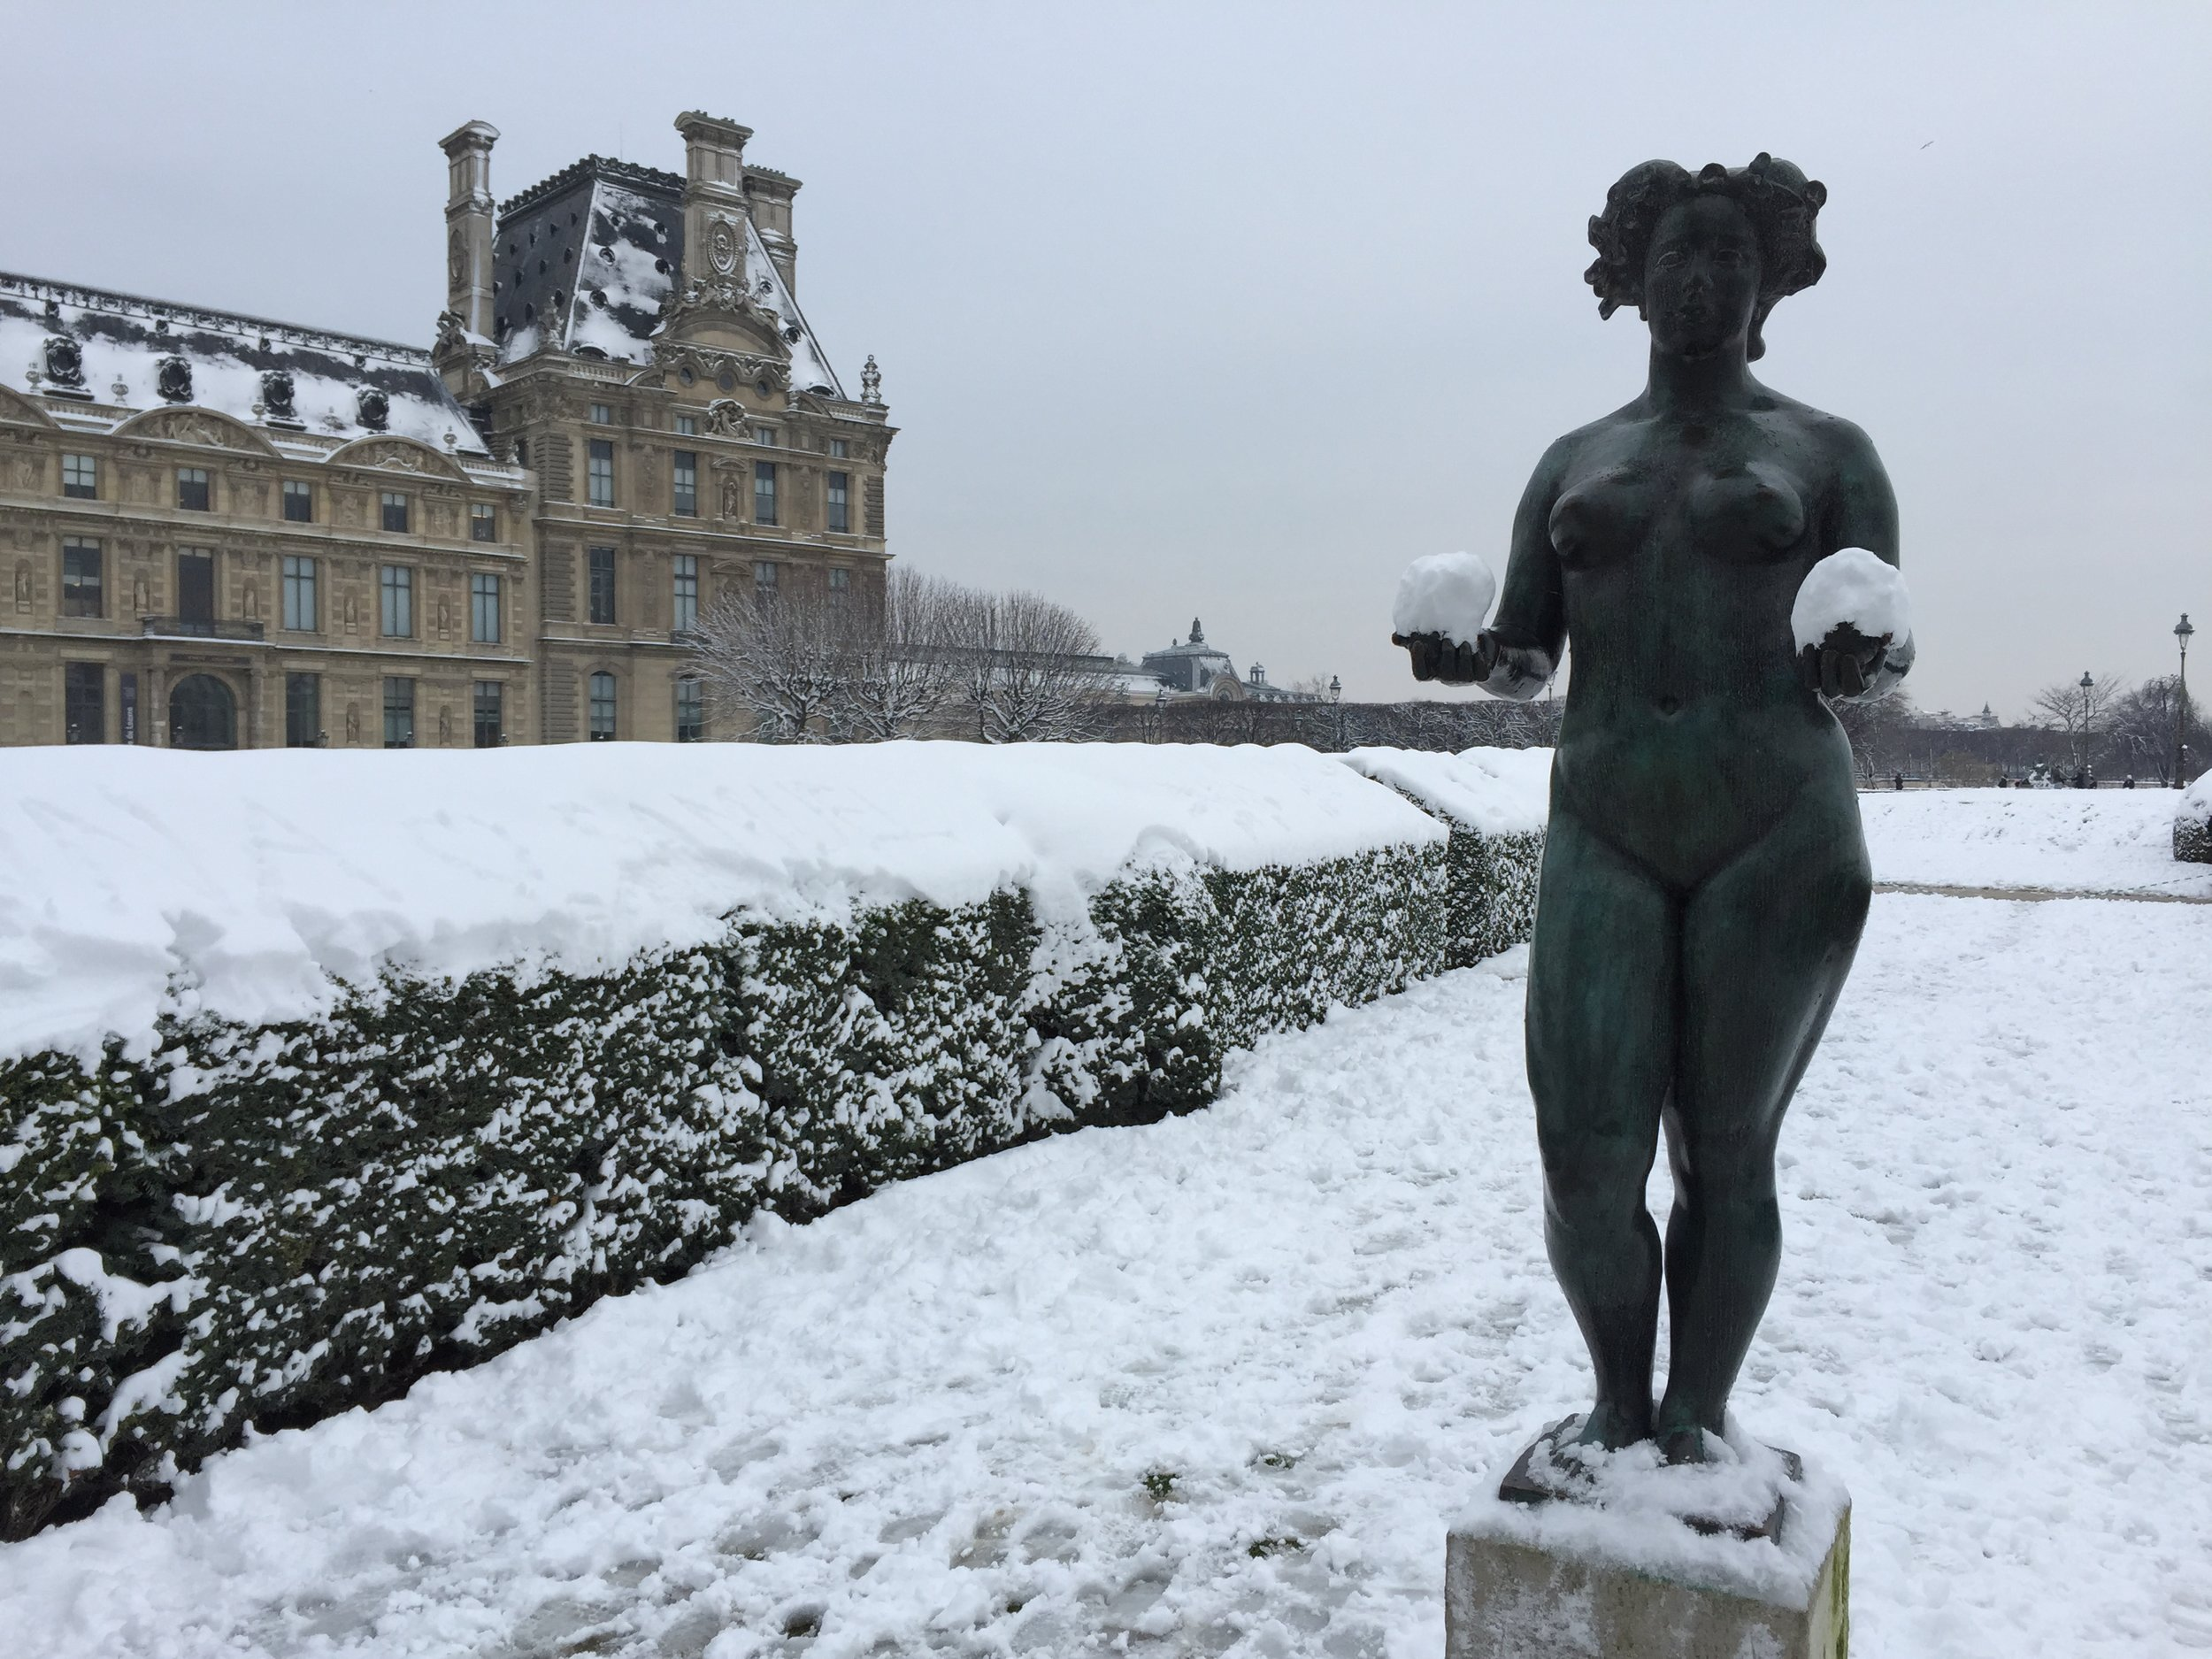 The Tuileries gardens are dotted with statues. I'll call this one The Juggler.